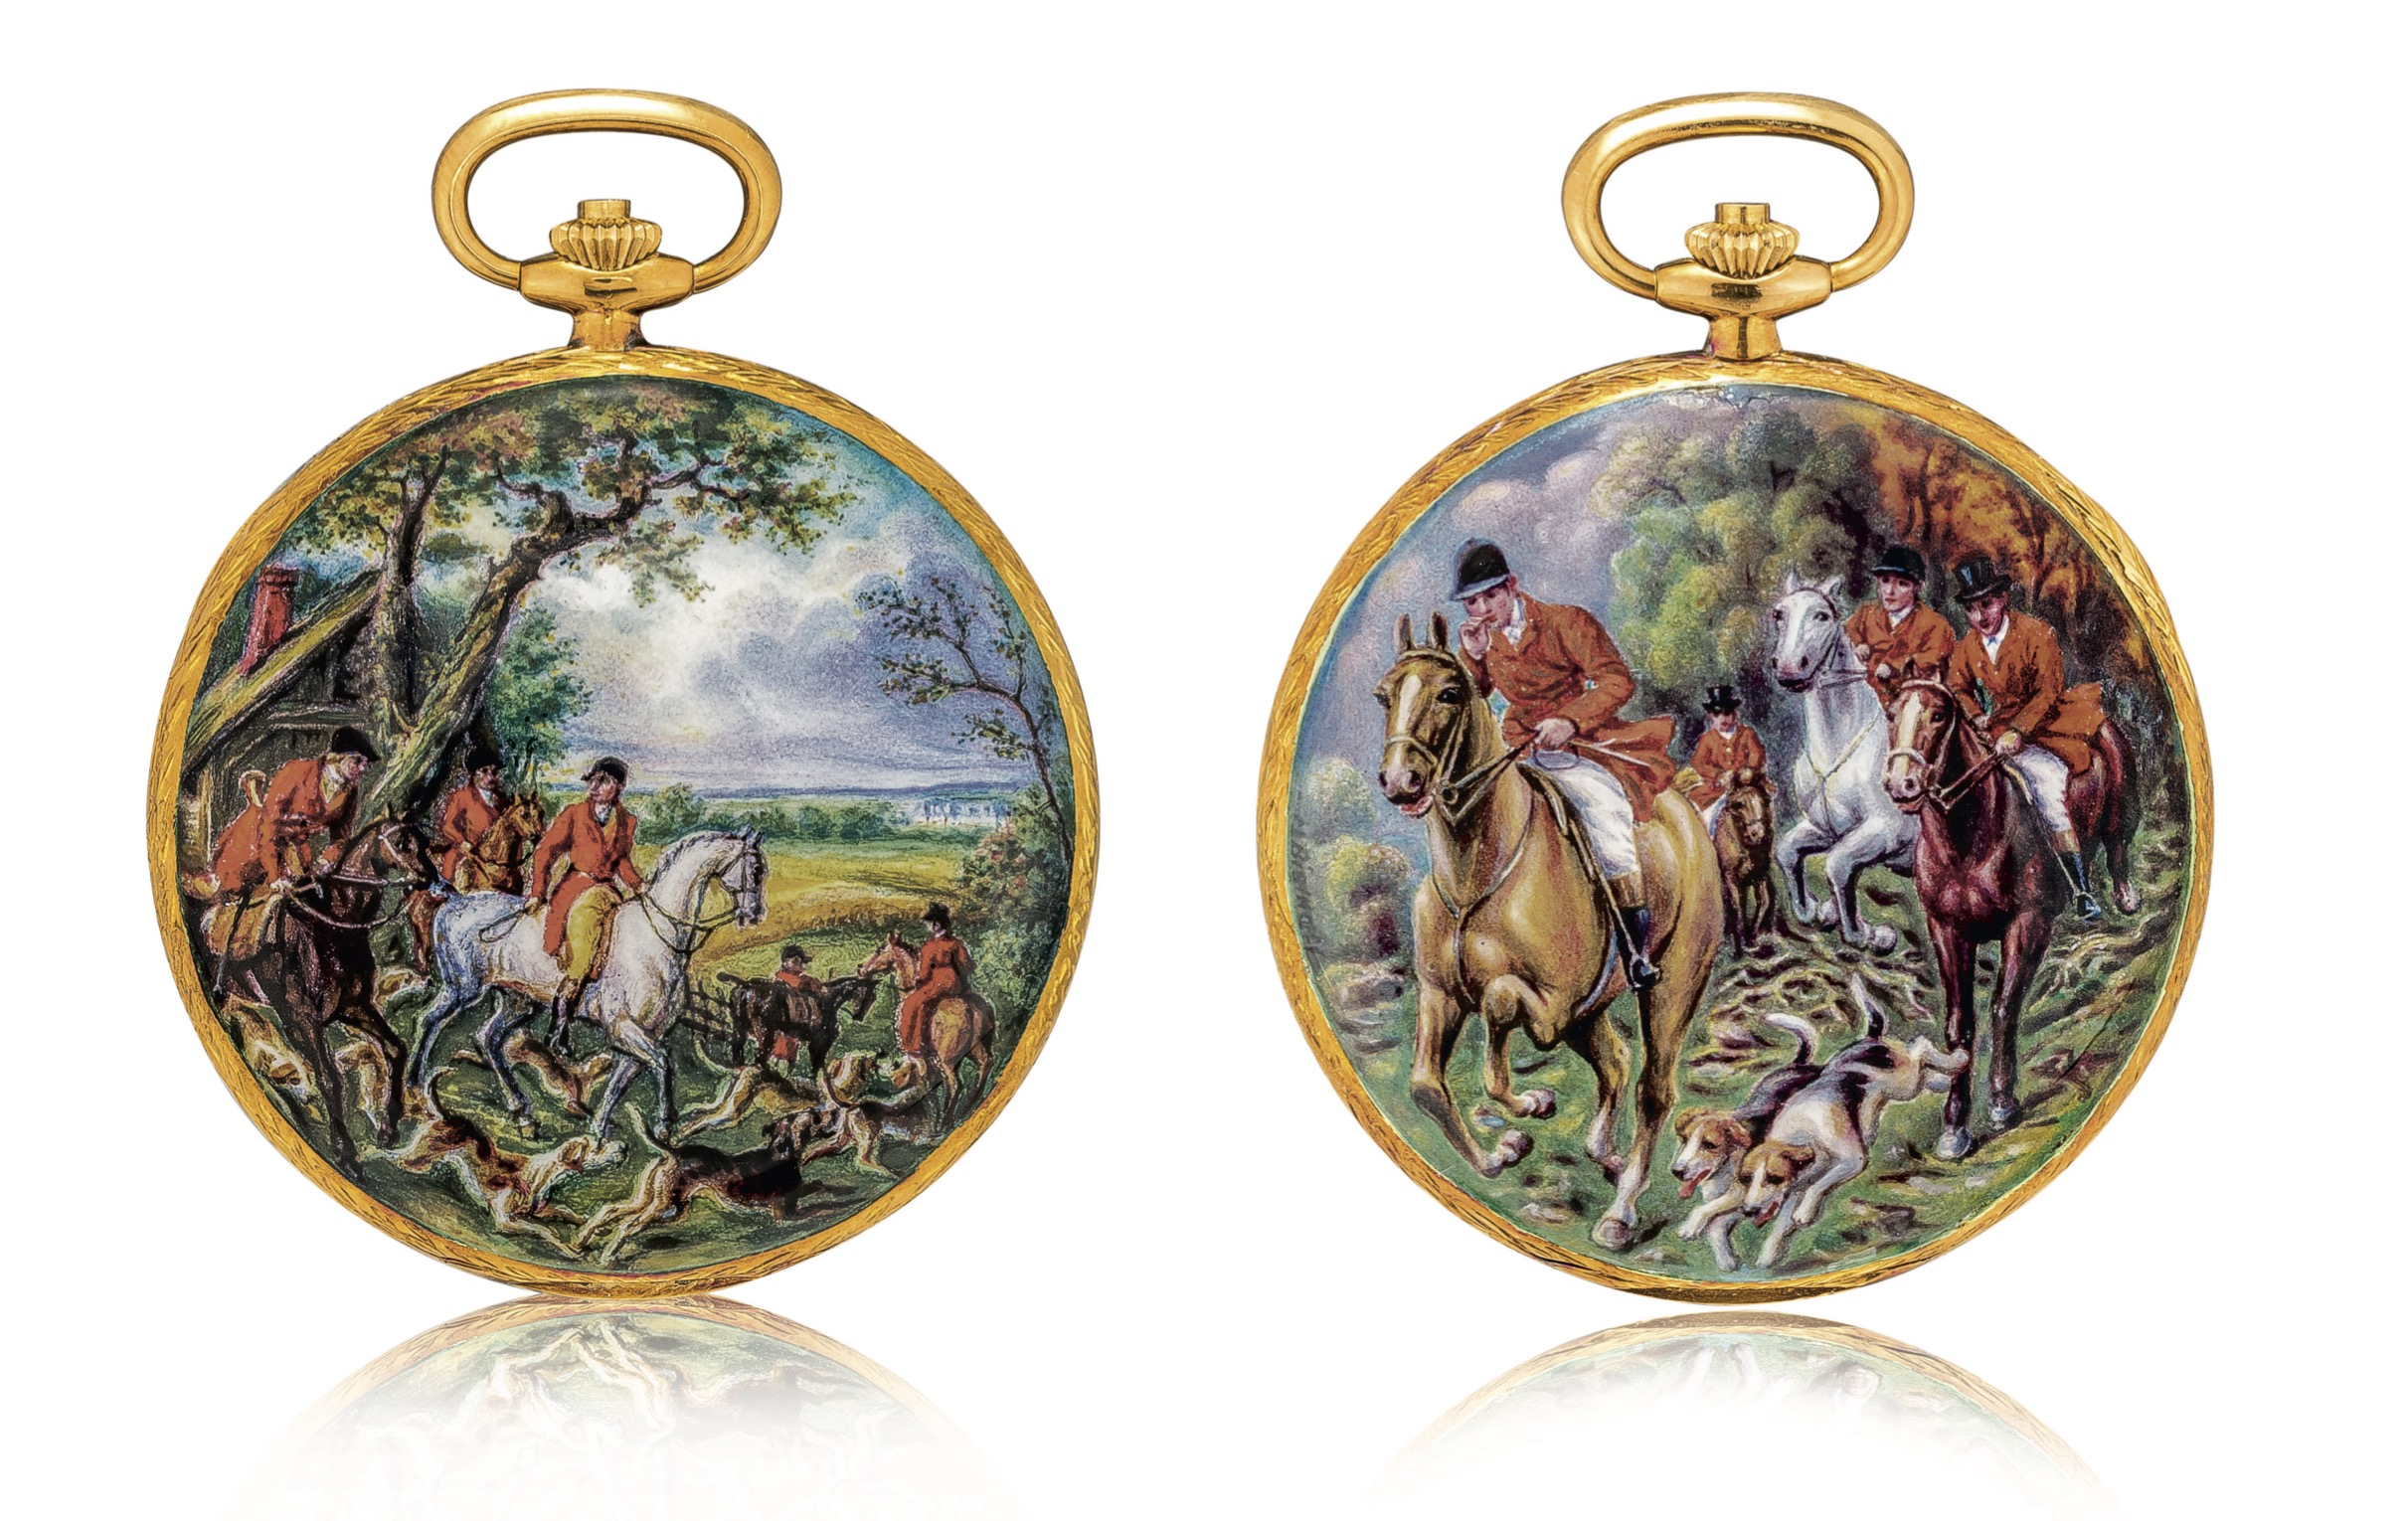 View full screen - View 1 of Lot 2186. Patek Philippe | Reference 823/003, A unique, highly important and exceptional yellow gold hunting case watch with double sided enamel miniature, painted by Madame Marthe Bischoff after a painting by Carle Vernet, retailed by Gübelin and accompanied by original Certificate of Origin, sales invoice and presentation box, Made in 1976 | 百達翡麗 | 型號823/003  獨一無二、非常重要及非凡黃金獵殼懷錶,配 Madame Marthe Bischoff 摹 Carle Vernet 油畫作品的雙面微繪琺瑯,由 Gübelin 發行,附帶原廠證書、收據及盒子,1976年製.